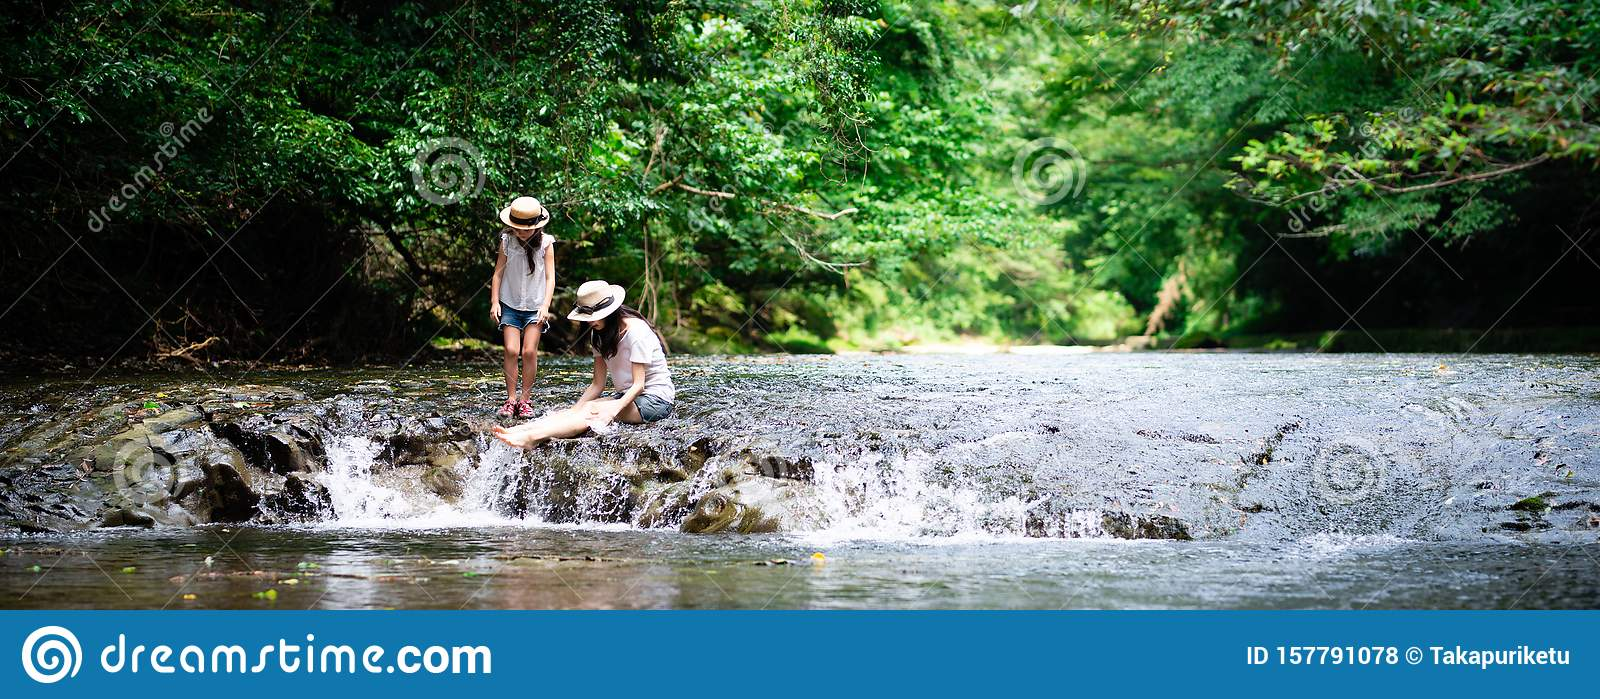 Mother And Child Adventure In Mountain Stream Stock Photo Image Of Copy Childcare 157791078